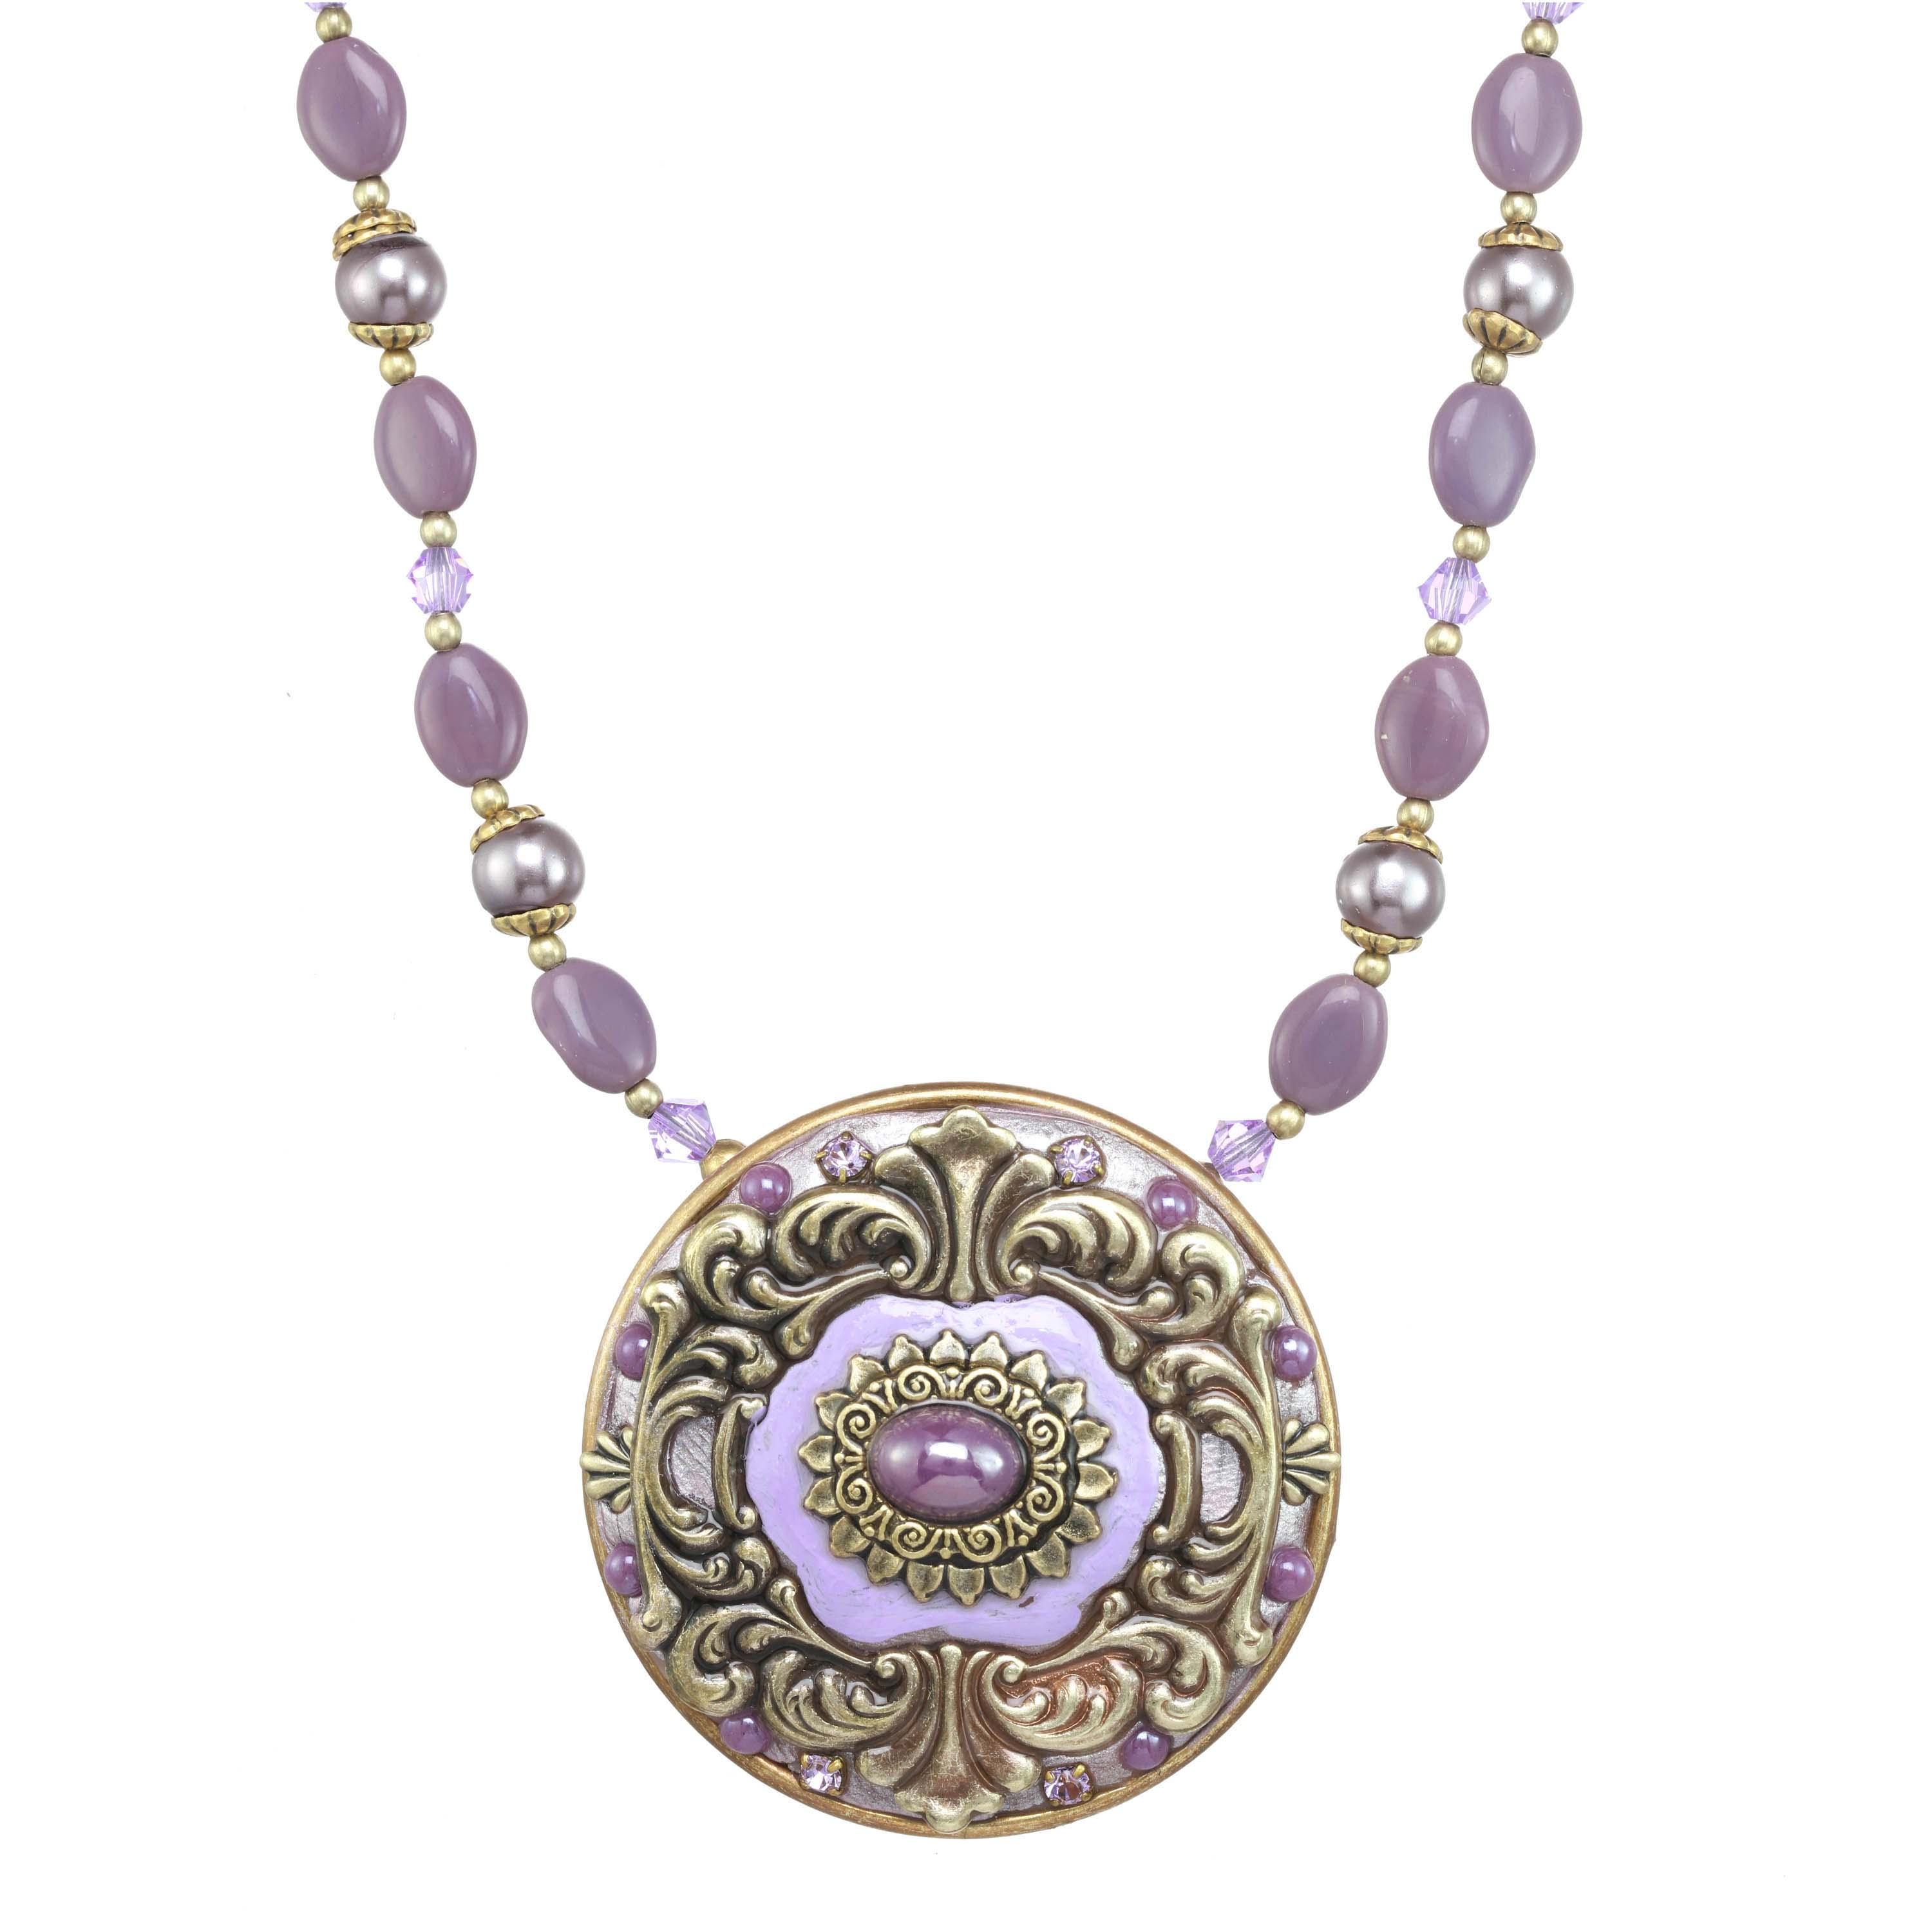 Lilac Round Pendant Necklace